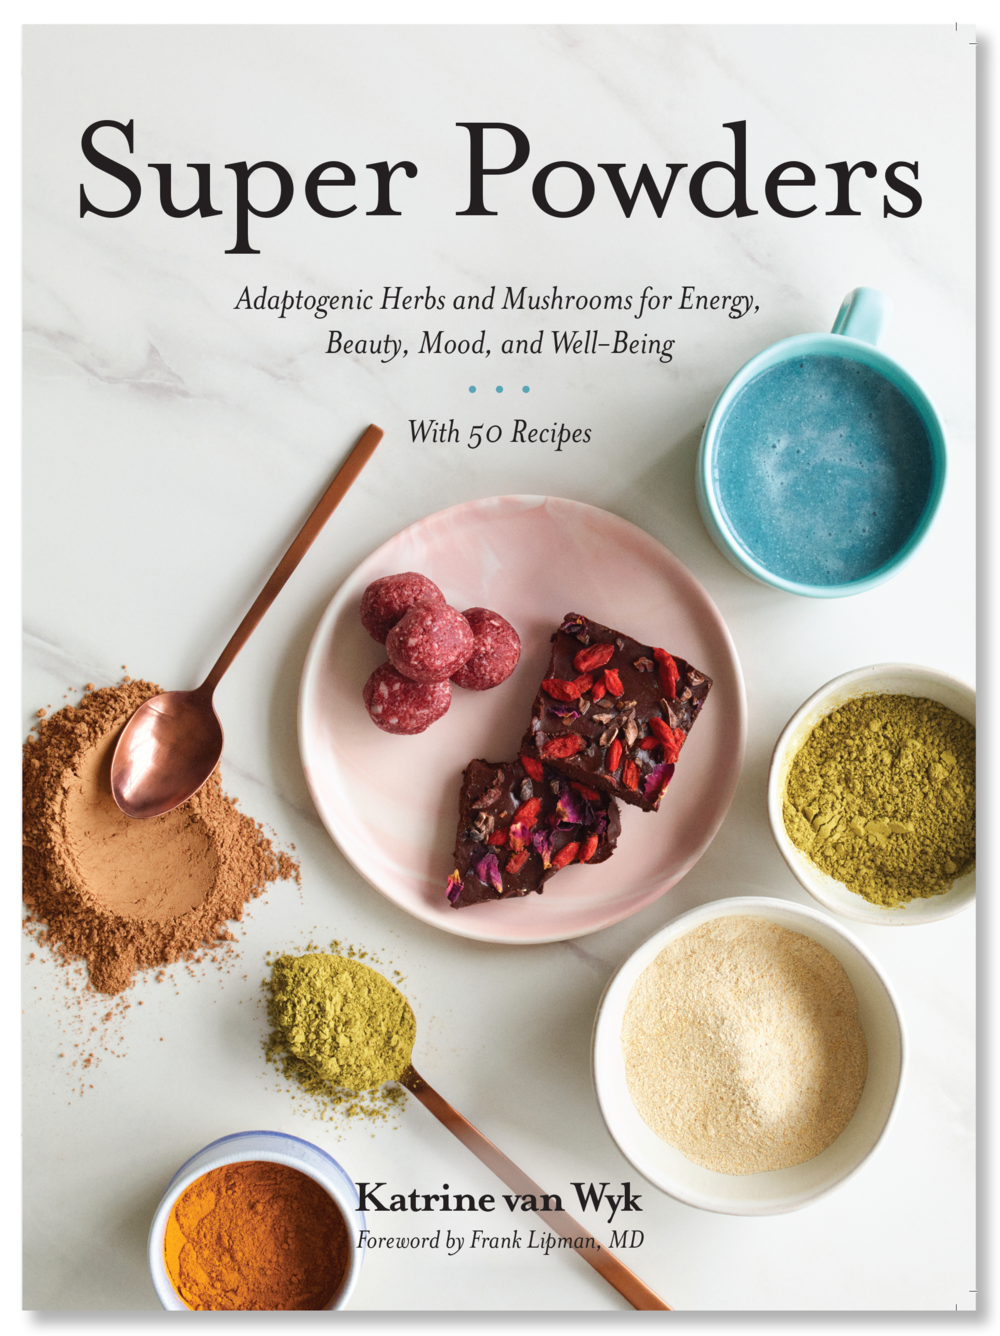 SuperPowders_blad-1.png